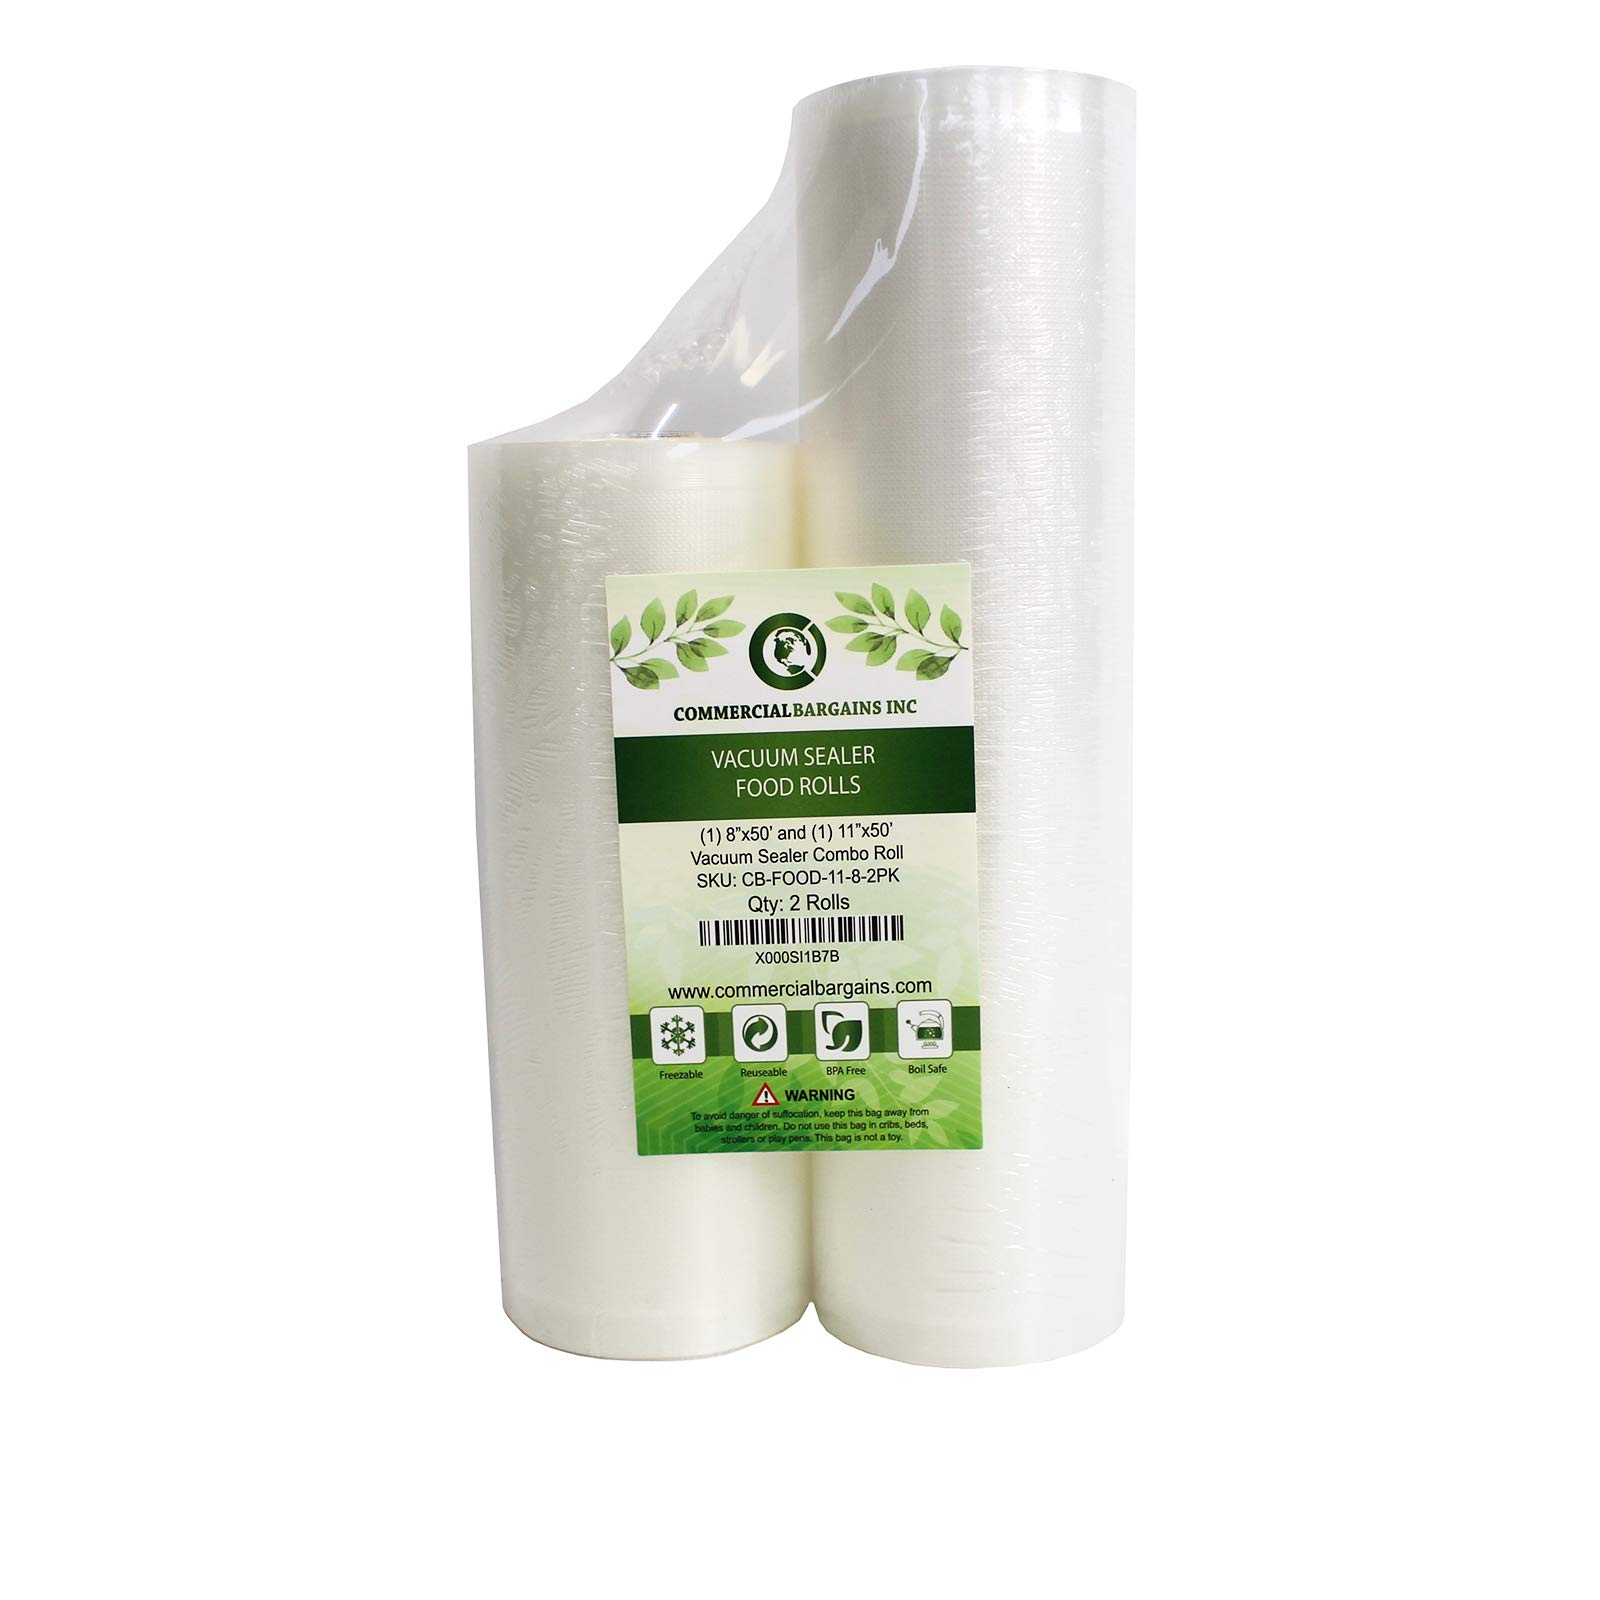 Commercial Bargains 11'' x 50' and 8'' x 50' Commercial Vacuum Sealer Saver Rolls Food Storage by Commercial Bargains